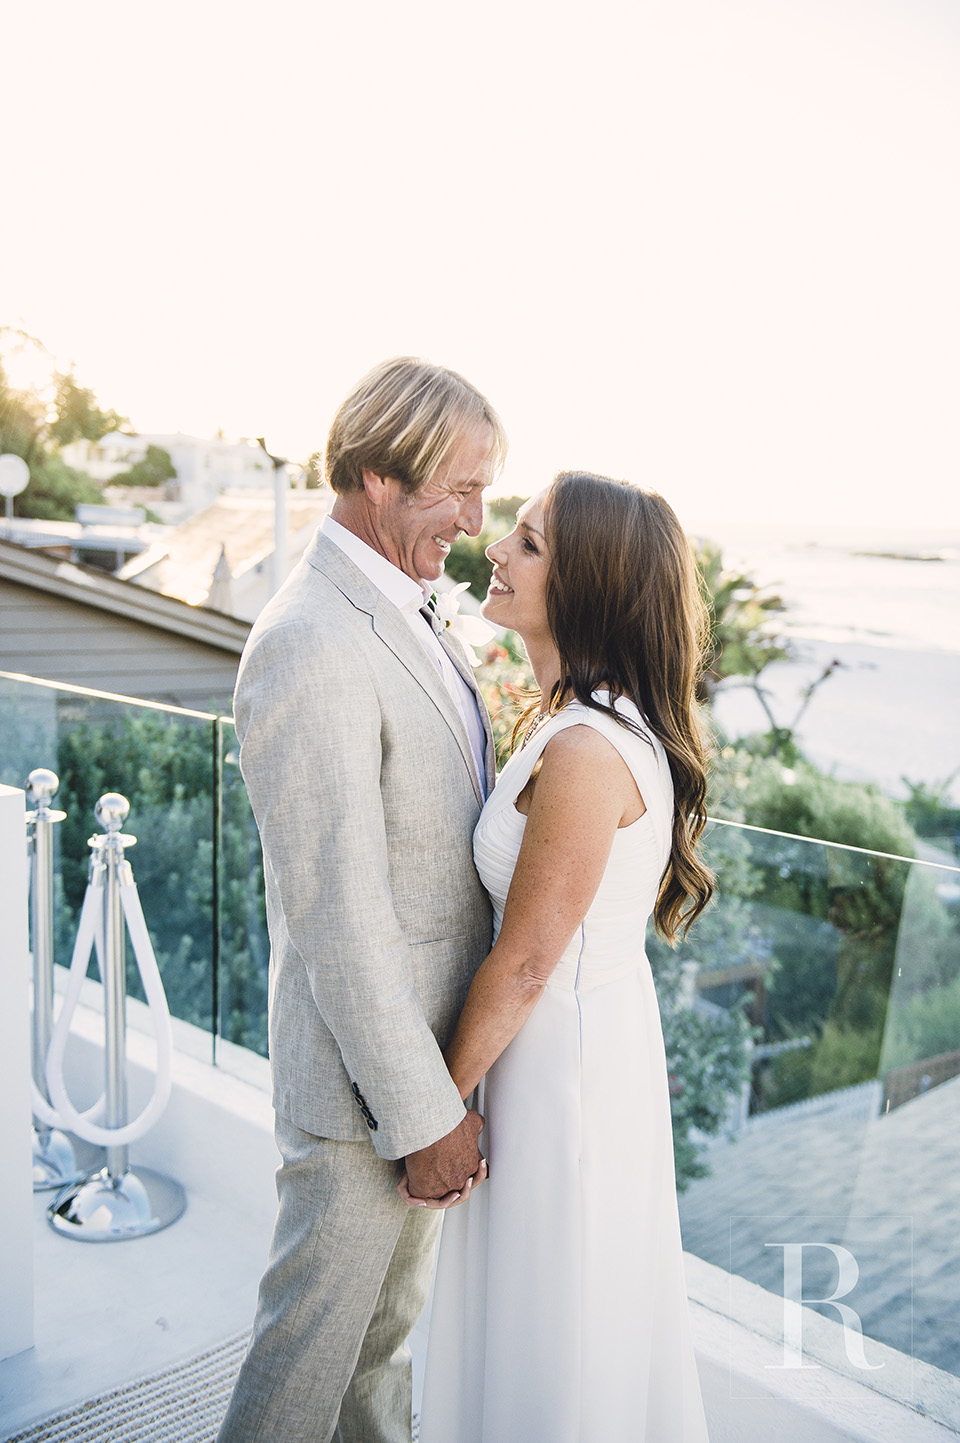 RYAN PARKER_WEDDING PHOTOGRAPHER_CAPE TOWN_CLIFTON_AMAZING SPACES_VANILLA ICE_WEDDING_D&A DSC_5749.jpg